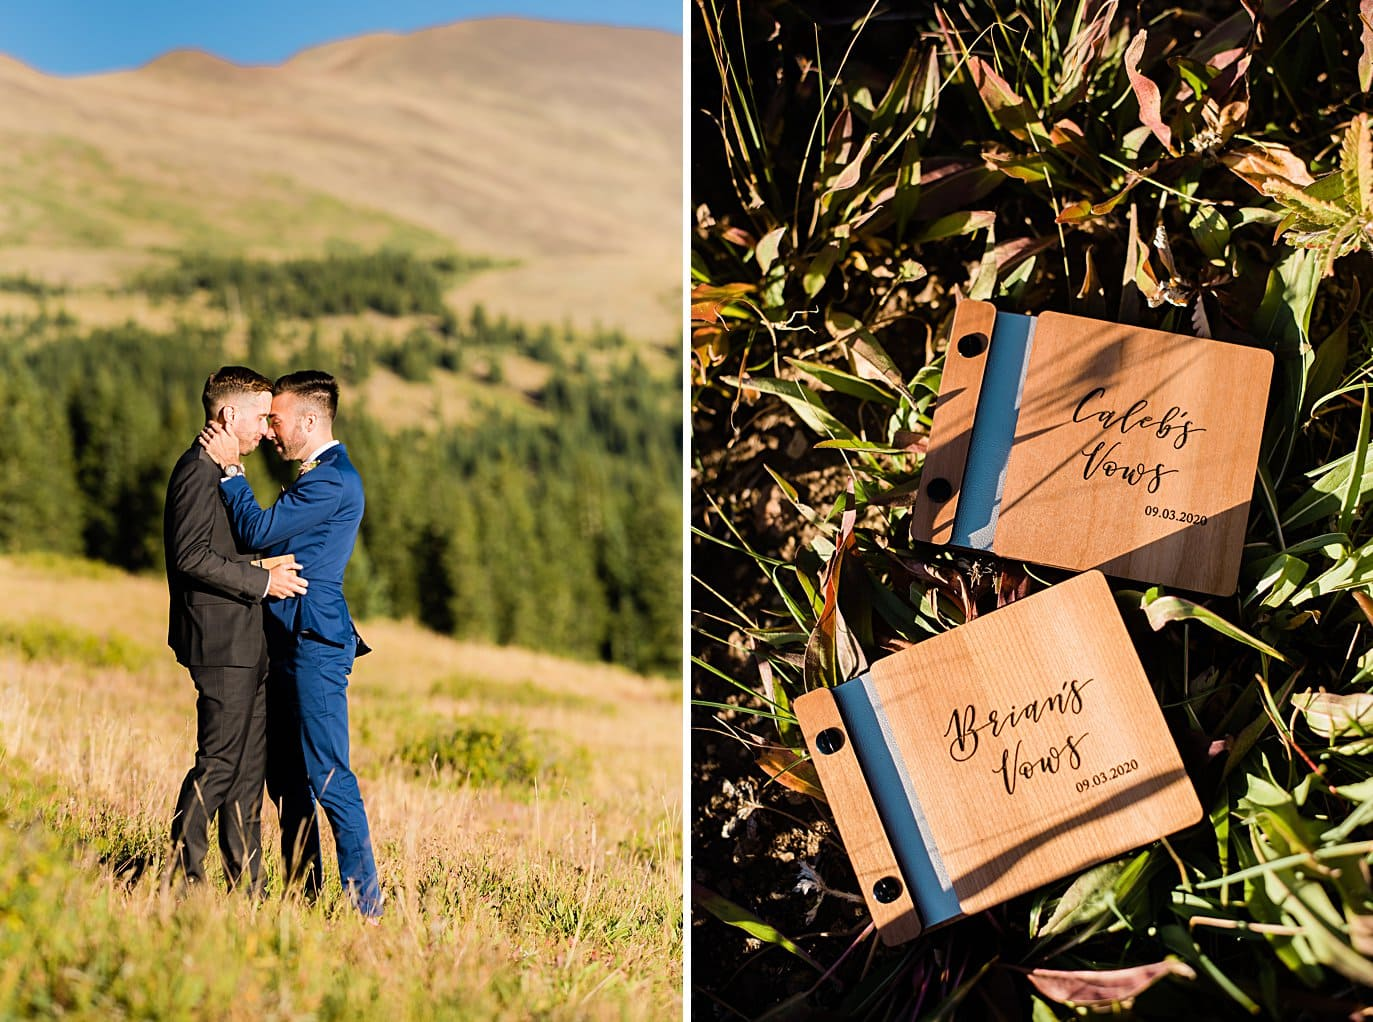 two grooms say vows in private ceremony at Breckenridge Elopement by Colorado gay wedding photographer Jennie Crate